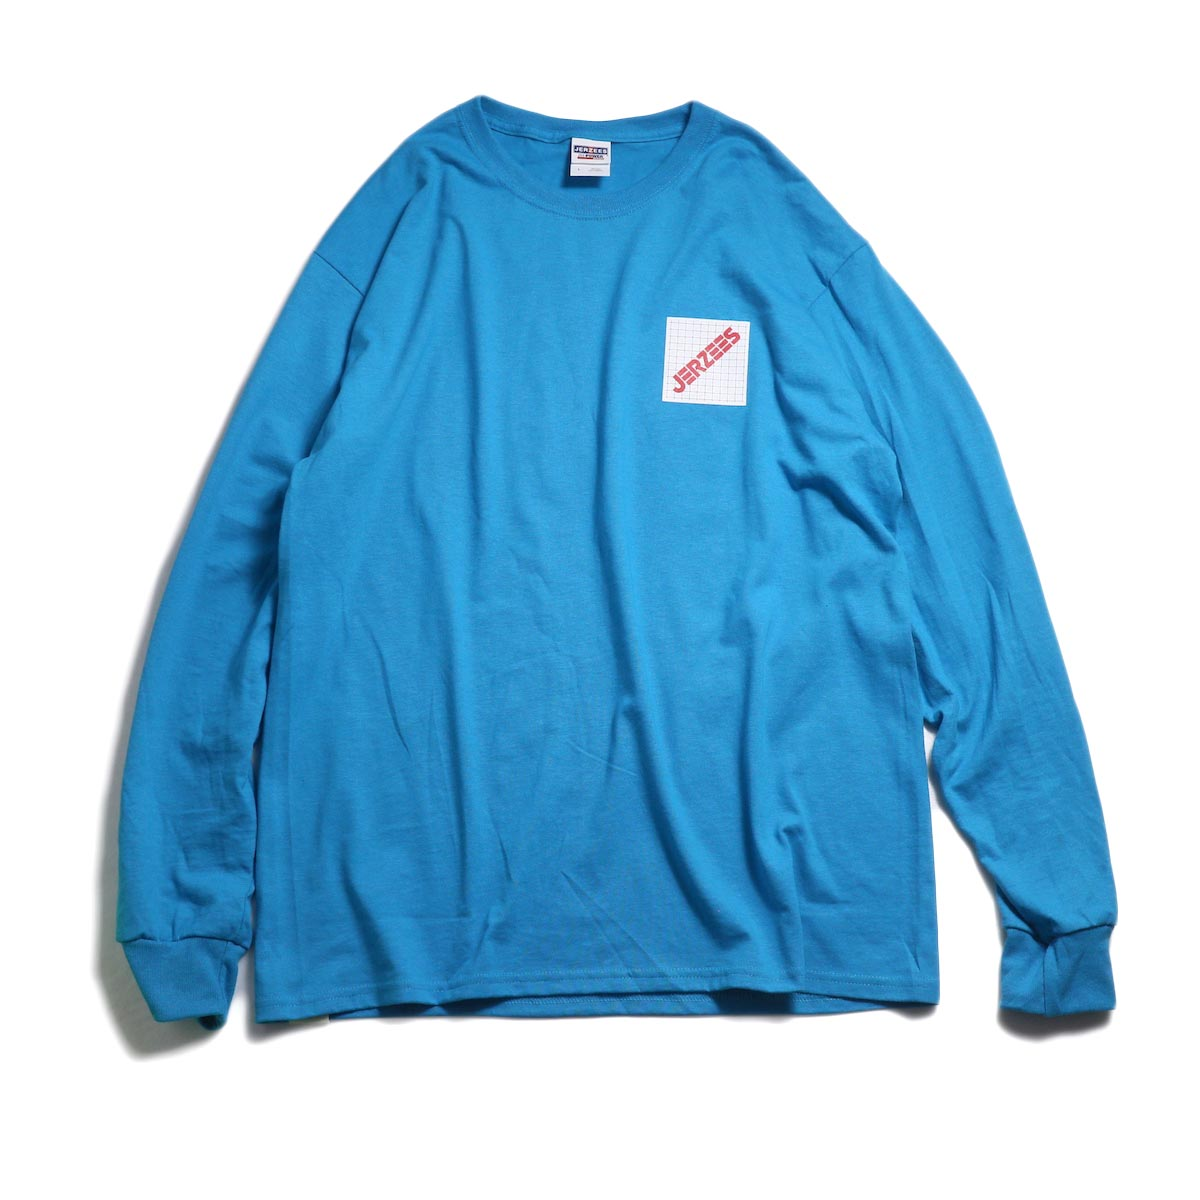 N.HOOLYWOOD × JERZEES  / 191-CS43-070 Long Sleeve Tee -Blue 正面